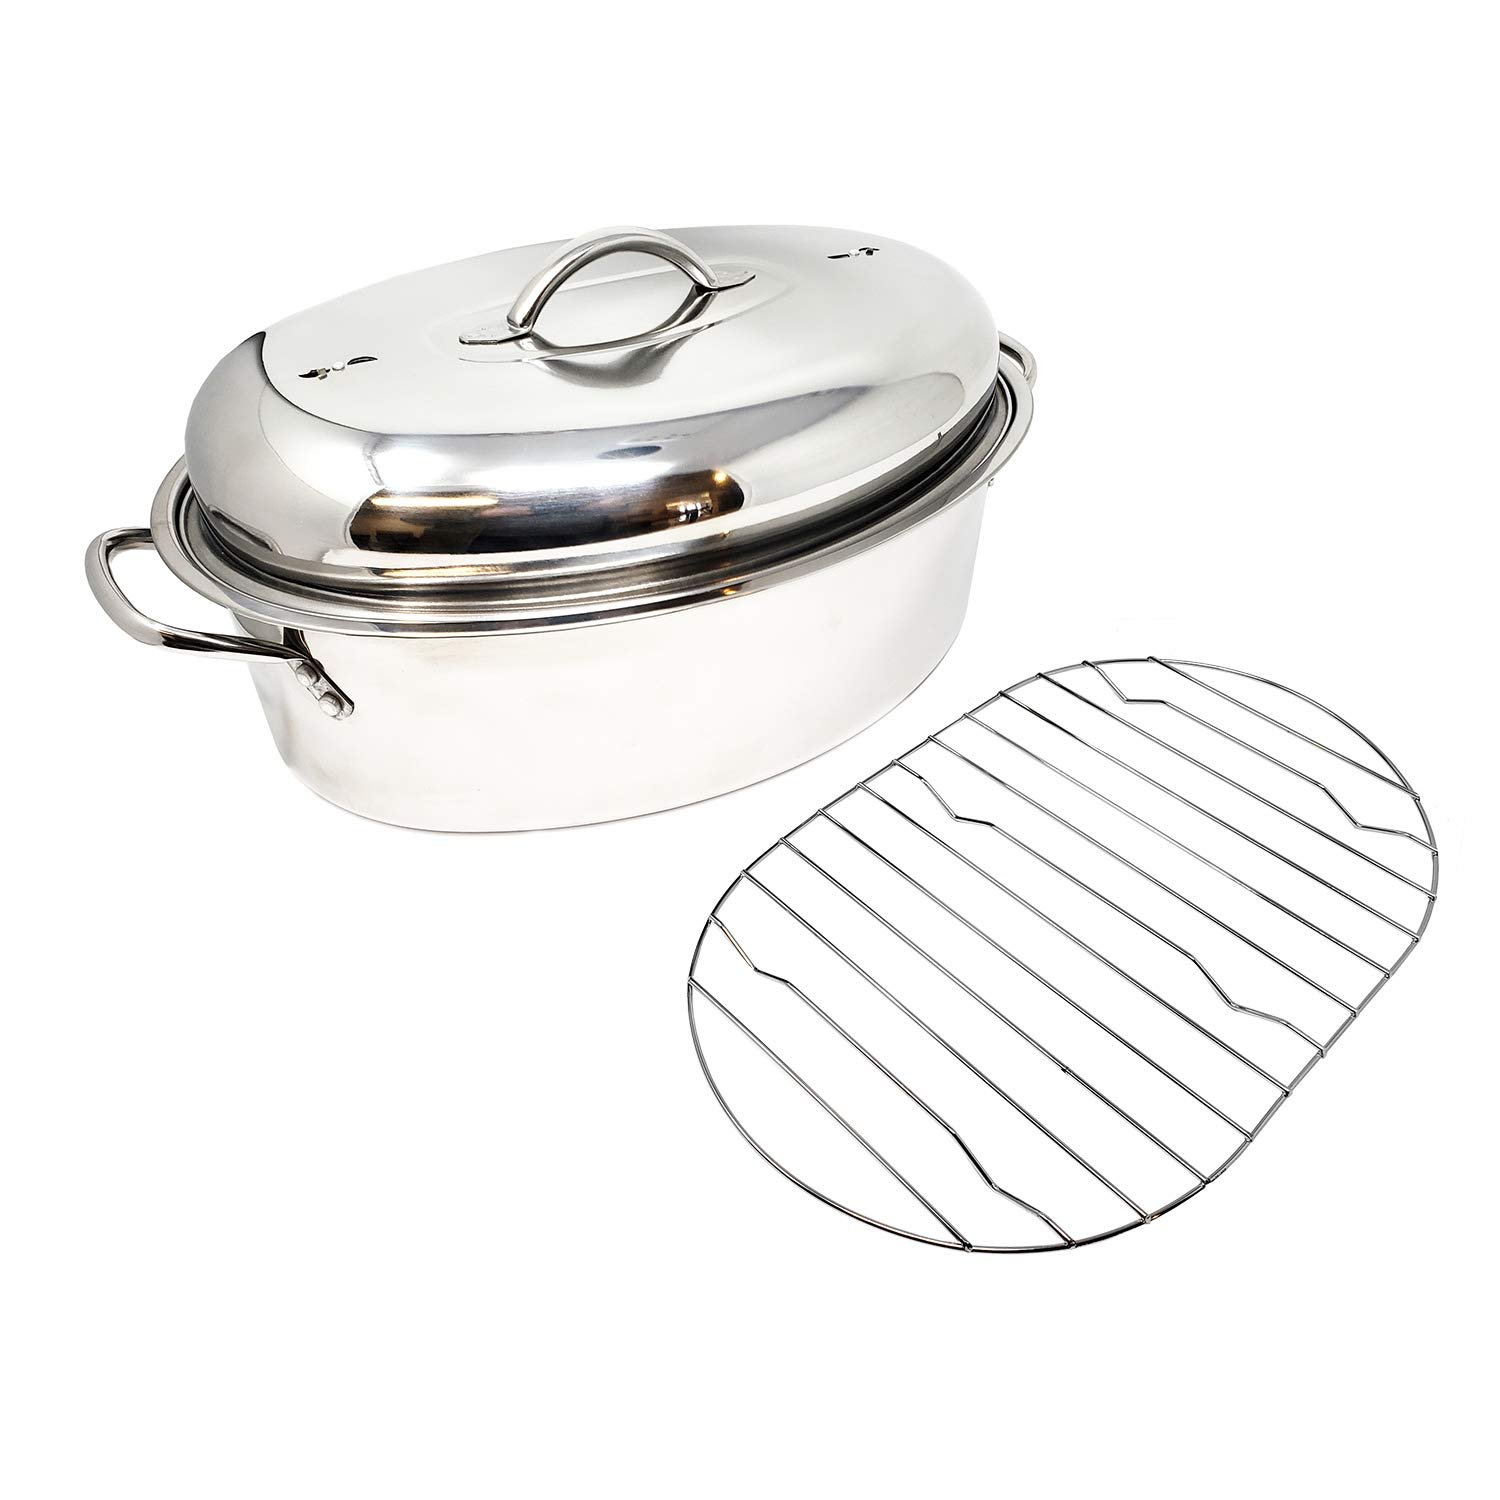 Extra Large Professional Stainless Steel Oval Roaster Serving Tray Set | With Induction Lid & Wire Rack | Multi-Purpose Oven Cookware High Dome | Meat Joints Chicken Vegetables 9.5 Quart Capacity